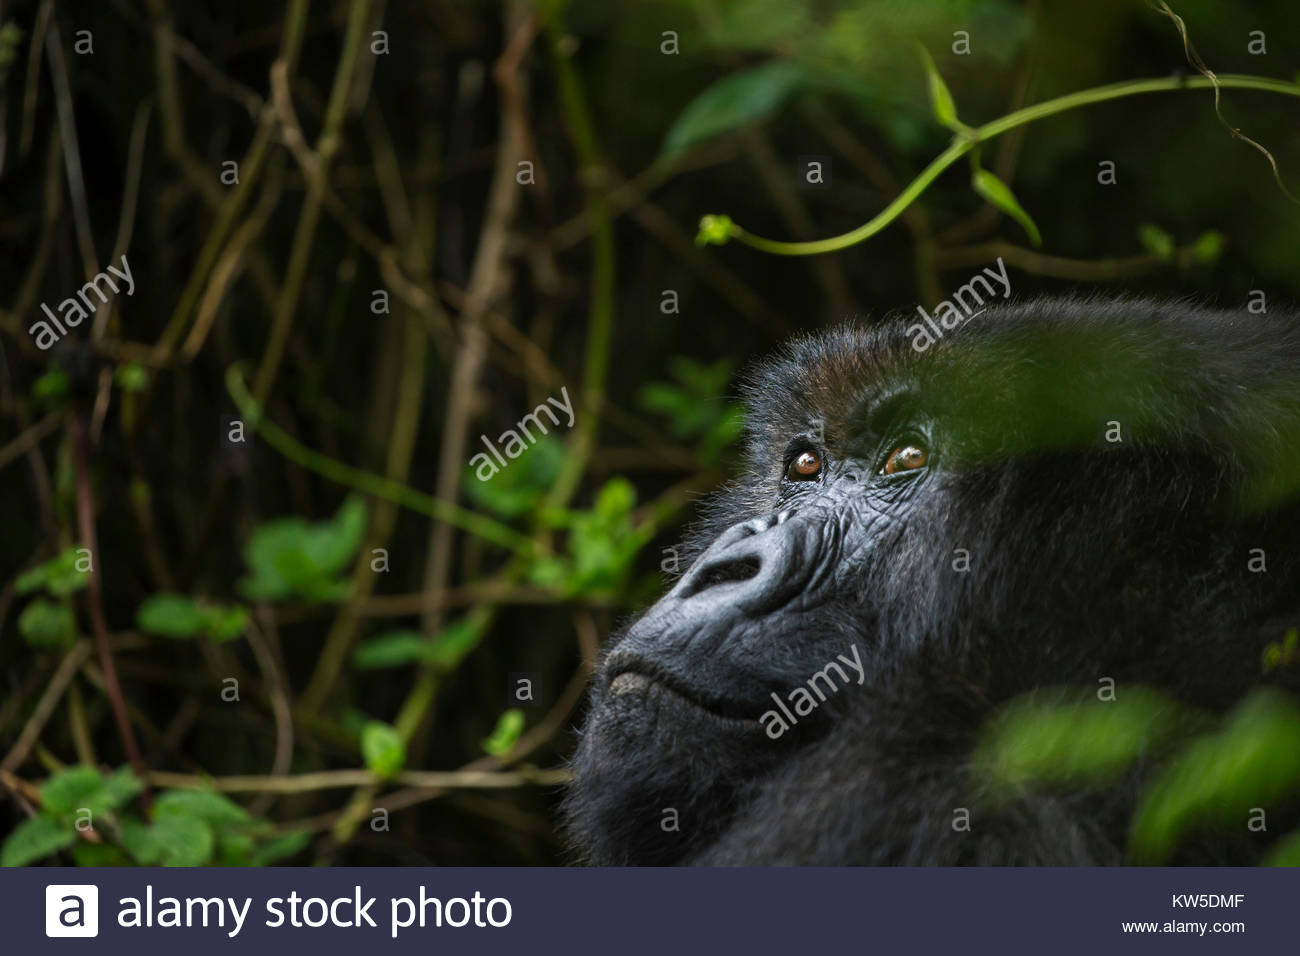 An elderly mountain gorilla in Volcanoes National Park. - Stock Image